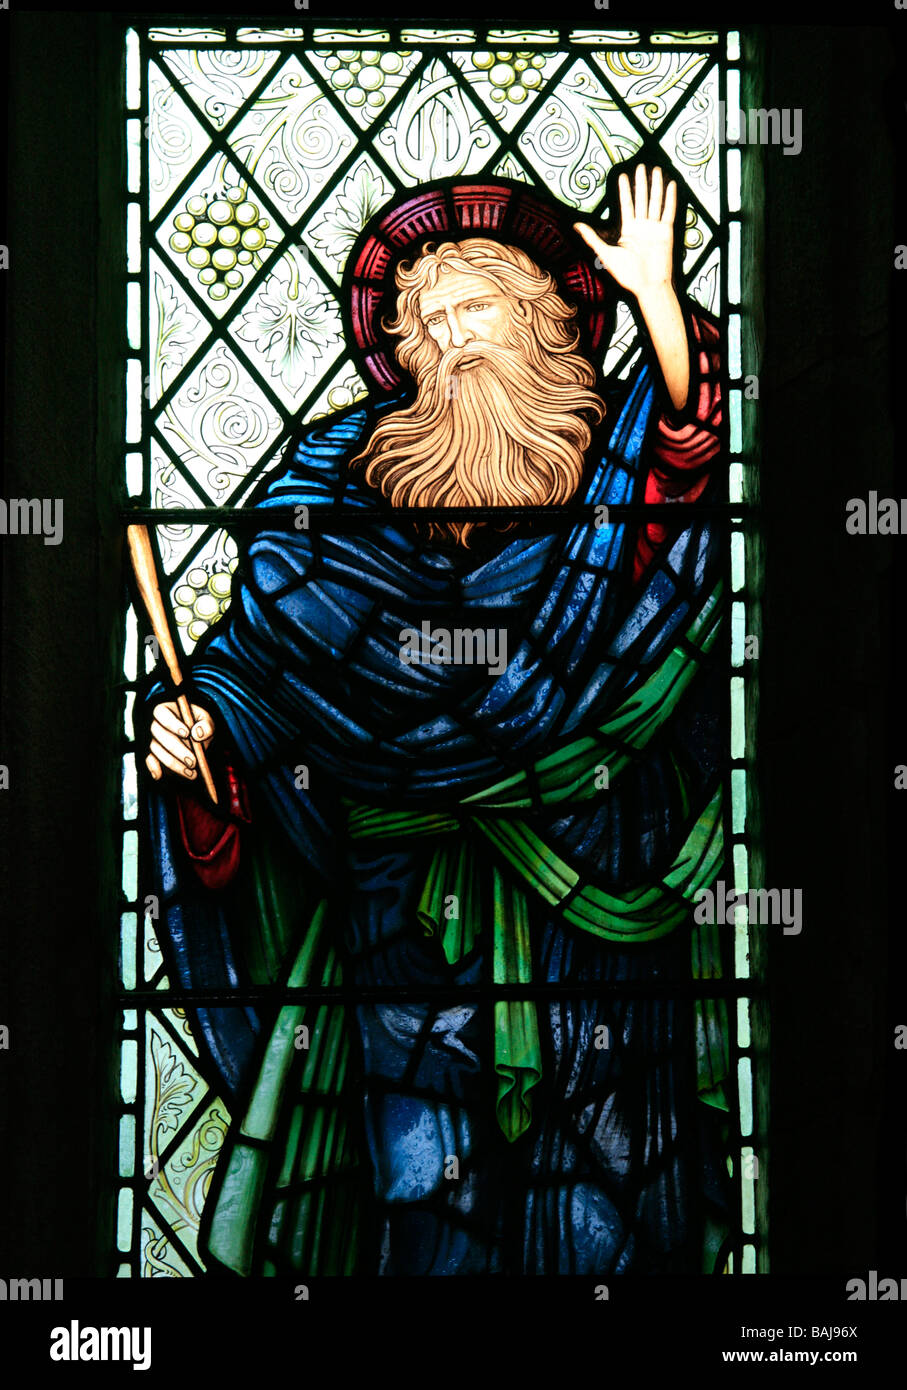 Depiction of the Prophet Ezekiel in a Stained Glass Window by Edward BurneJones - Stock Image